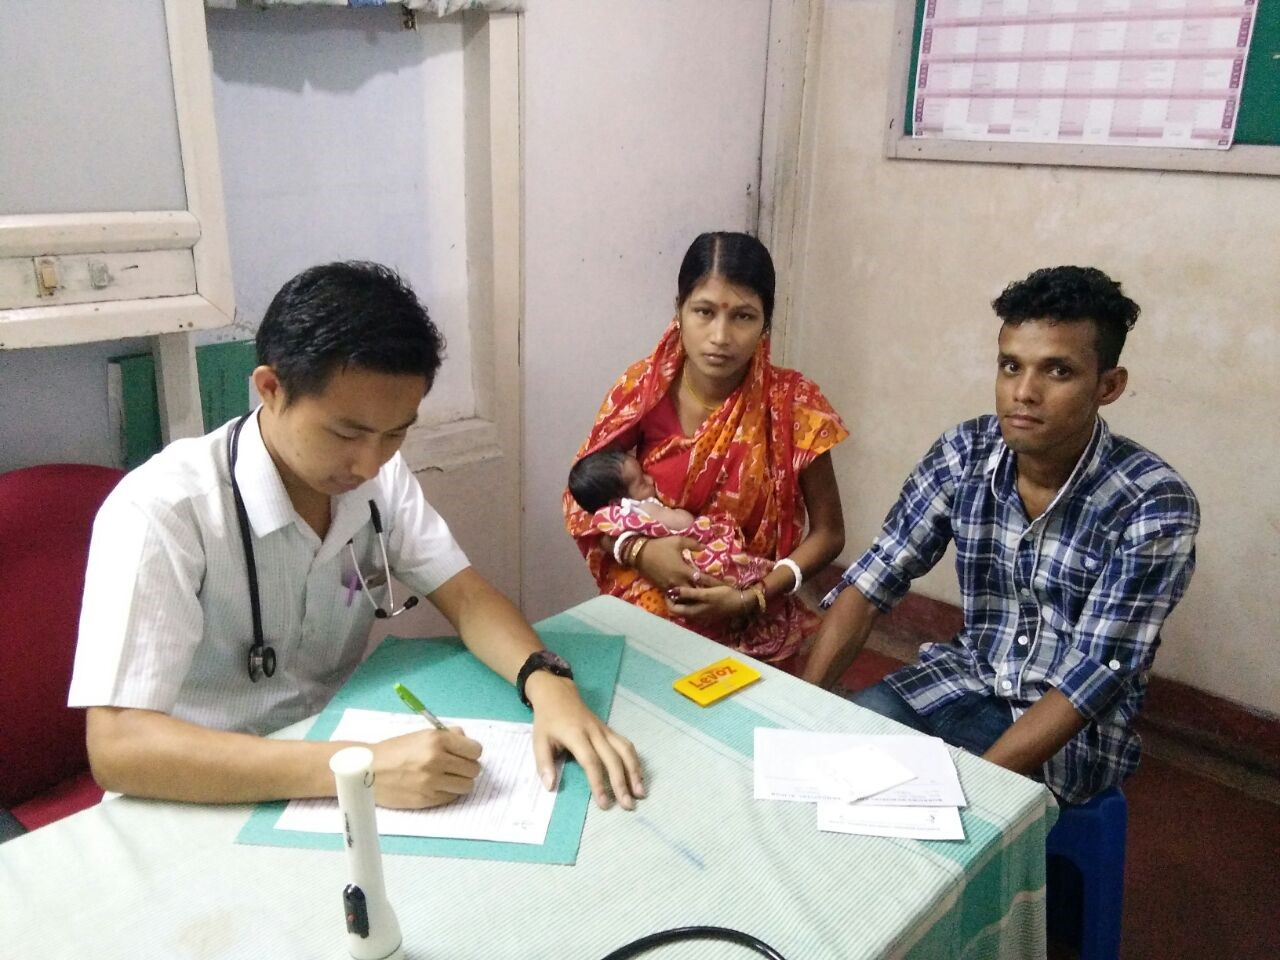 <p>A couple visits a pediatrician at EHA hospital in Alipur, India. Photo by EHA Hospital</p>